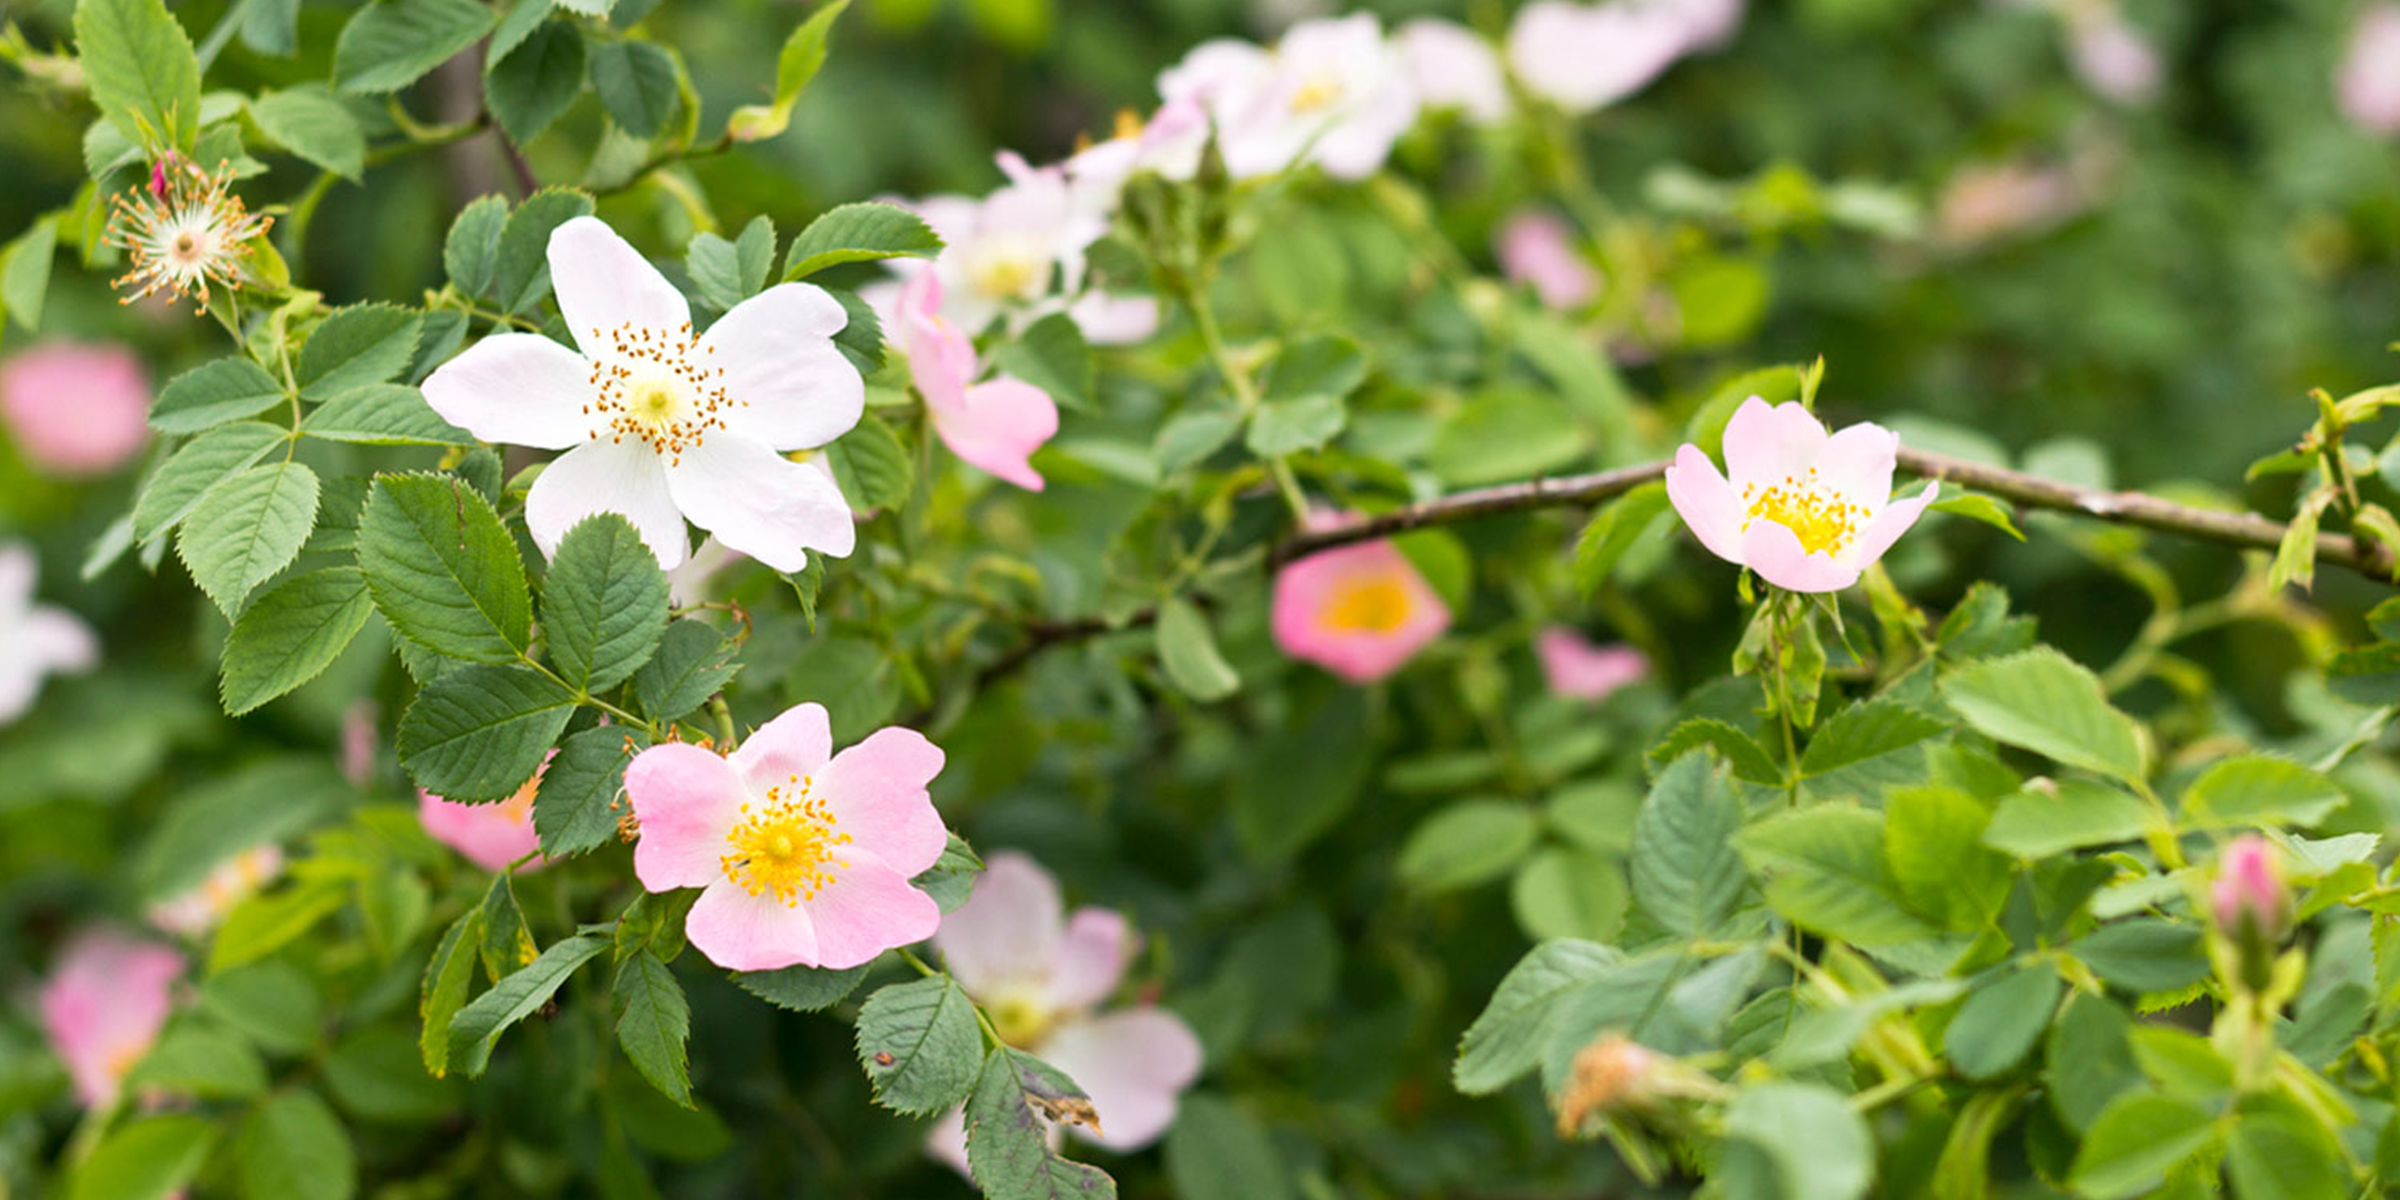 Wild Rose used for tea